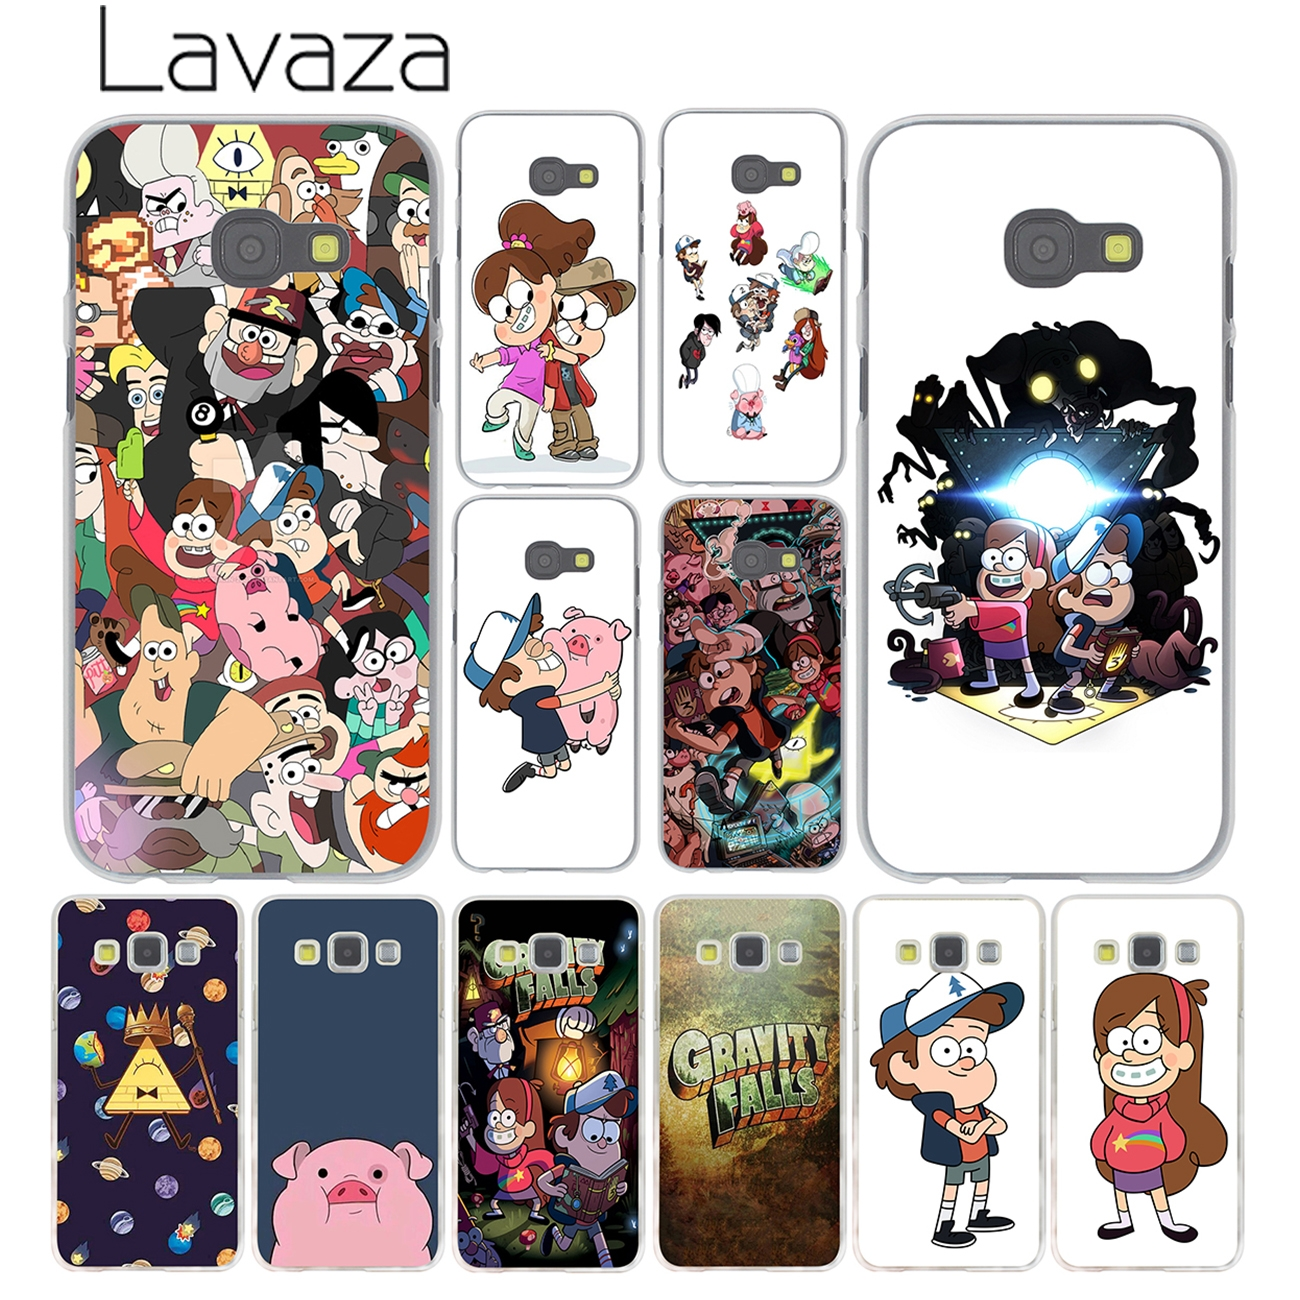 Lavaza Animation Gravity Falls Phone Cover Case for Samsung Galaxy A3 A5 A7 J3 J5 J7 2015 2016 2017 & Grand Prime 2 Note 4 3